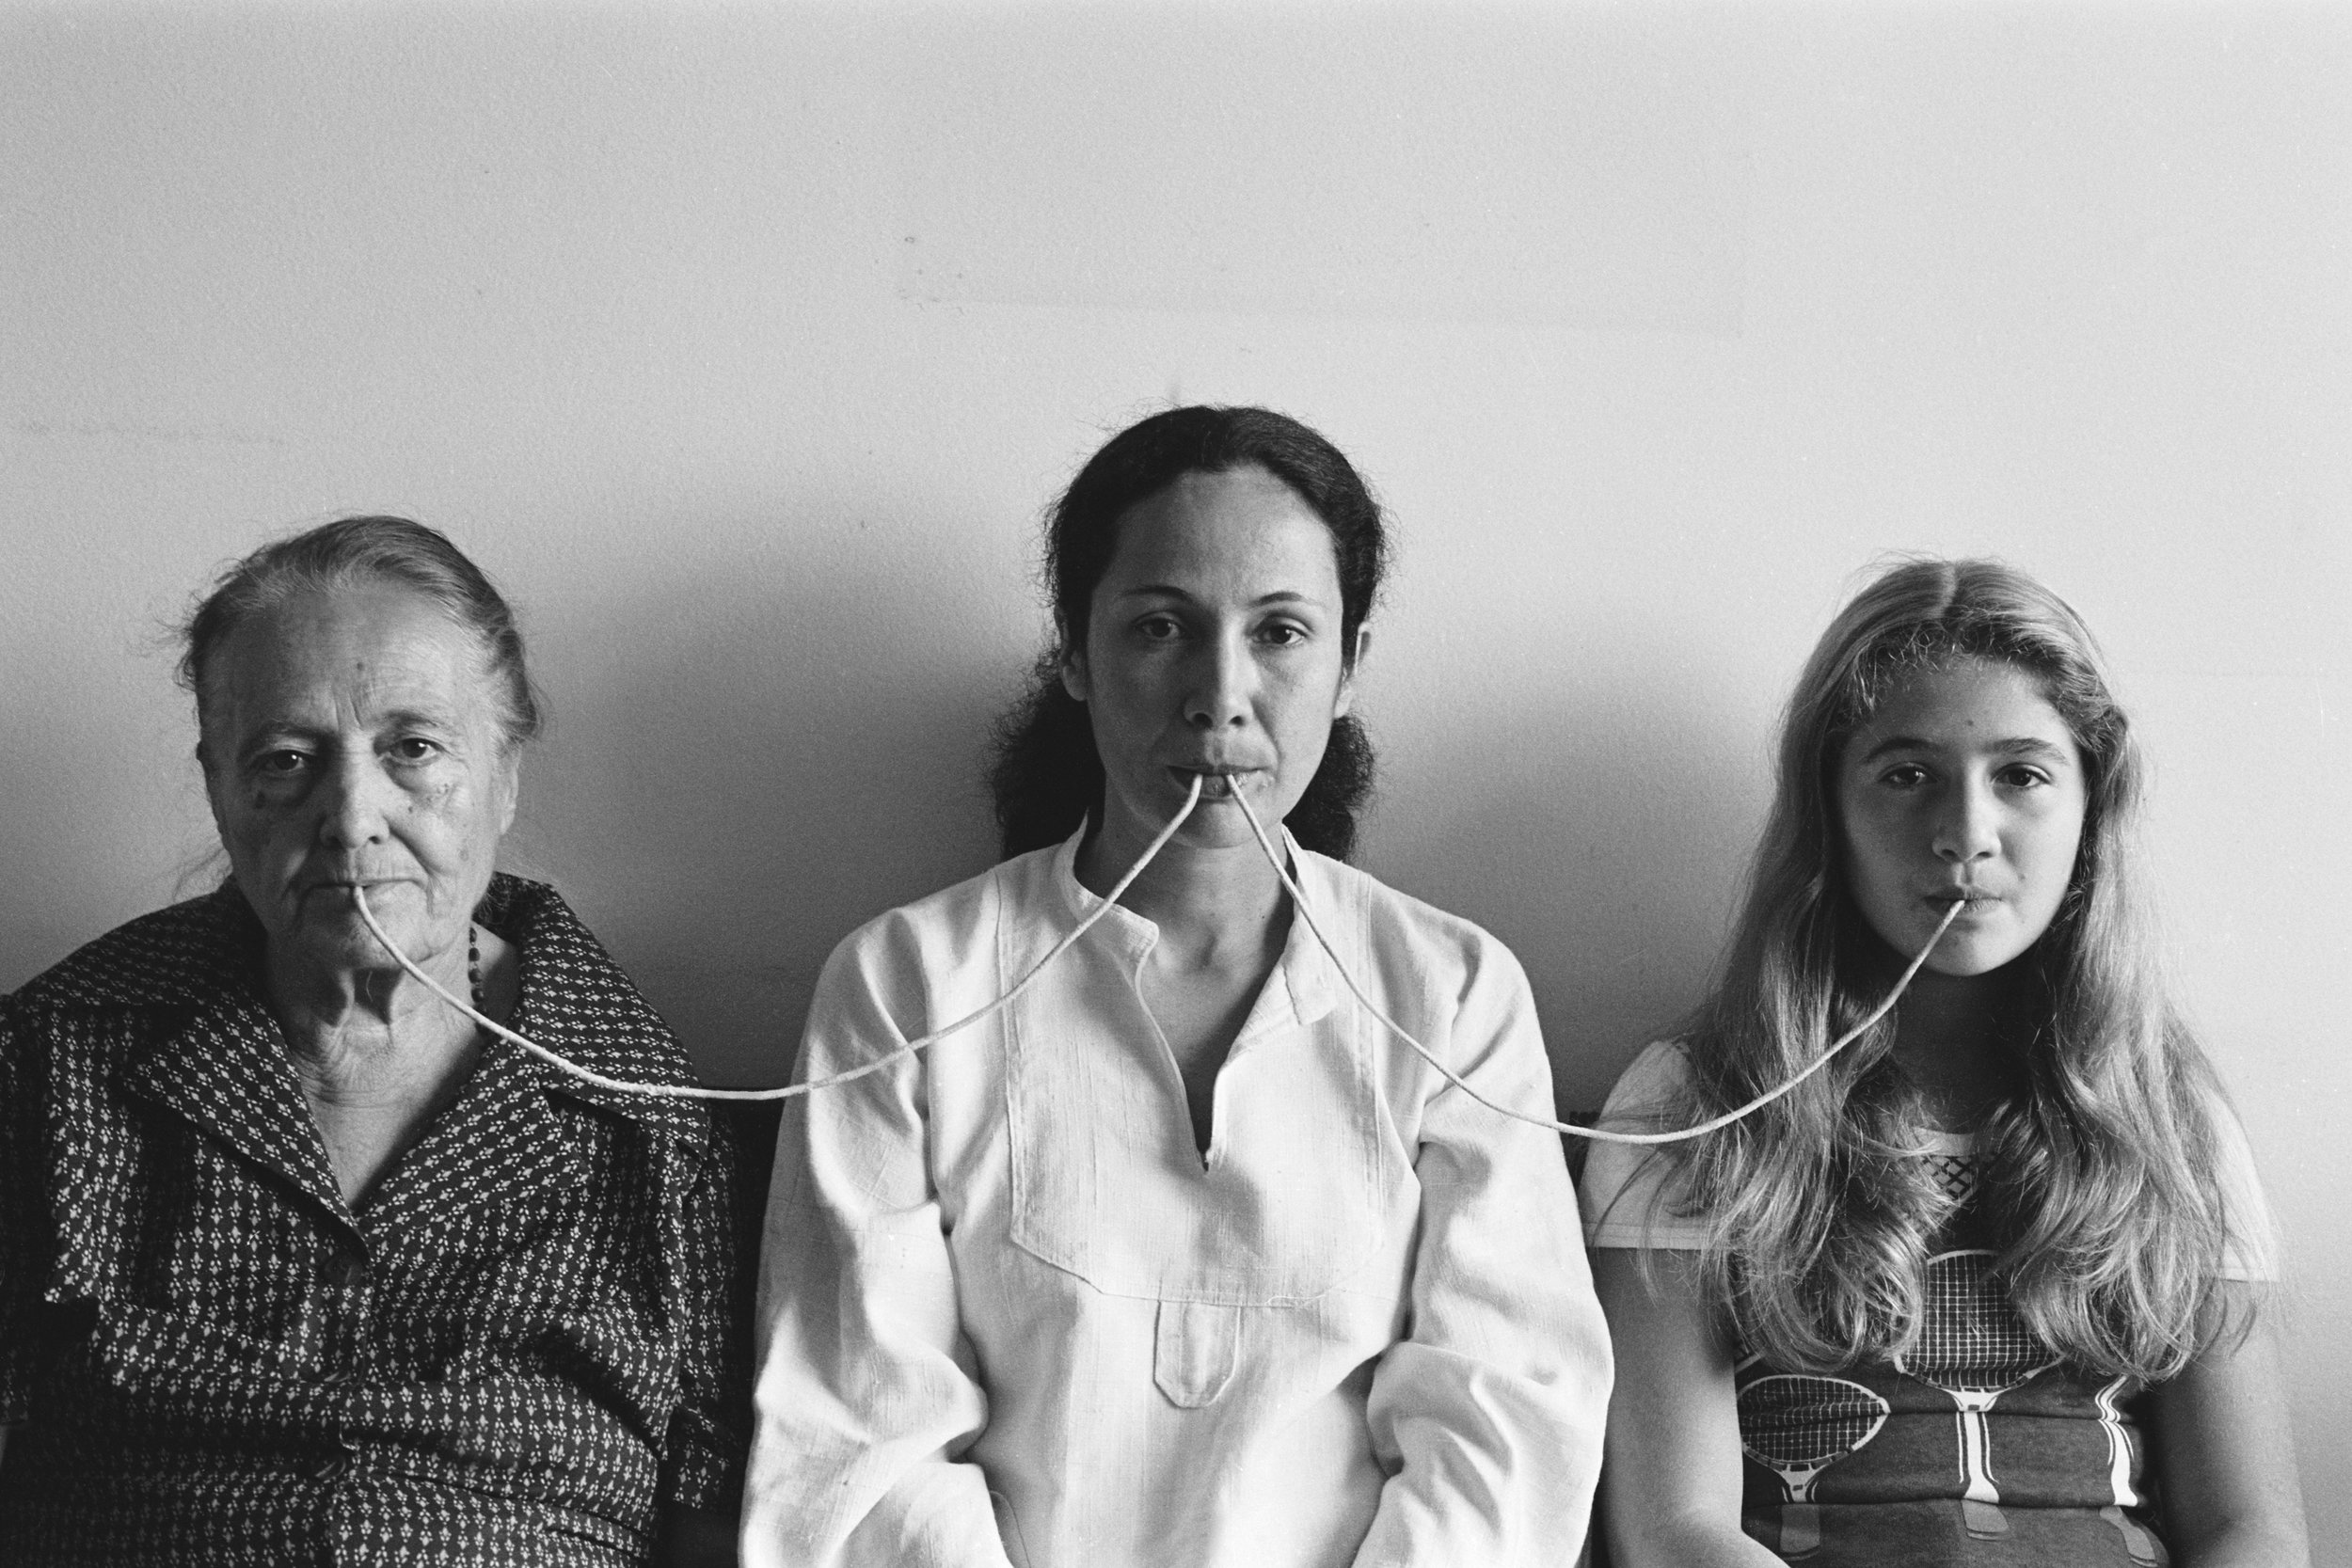 Anna Maria Maiolino, 'By a Thread', from Fotopoemação series (1976)-44.jpg